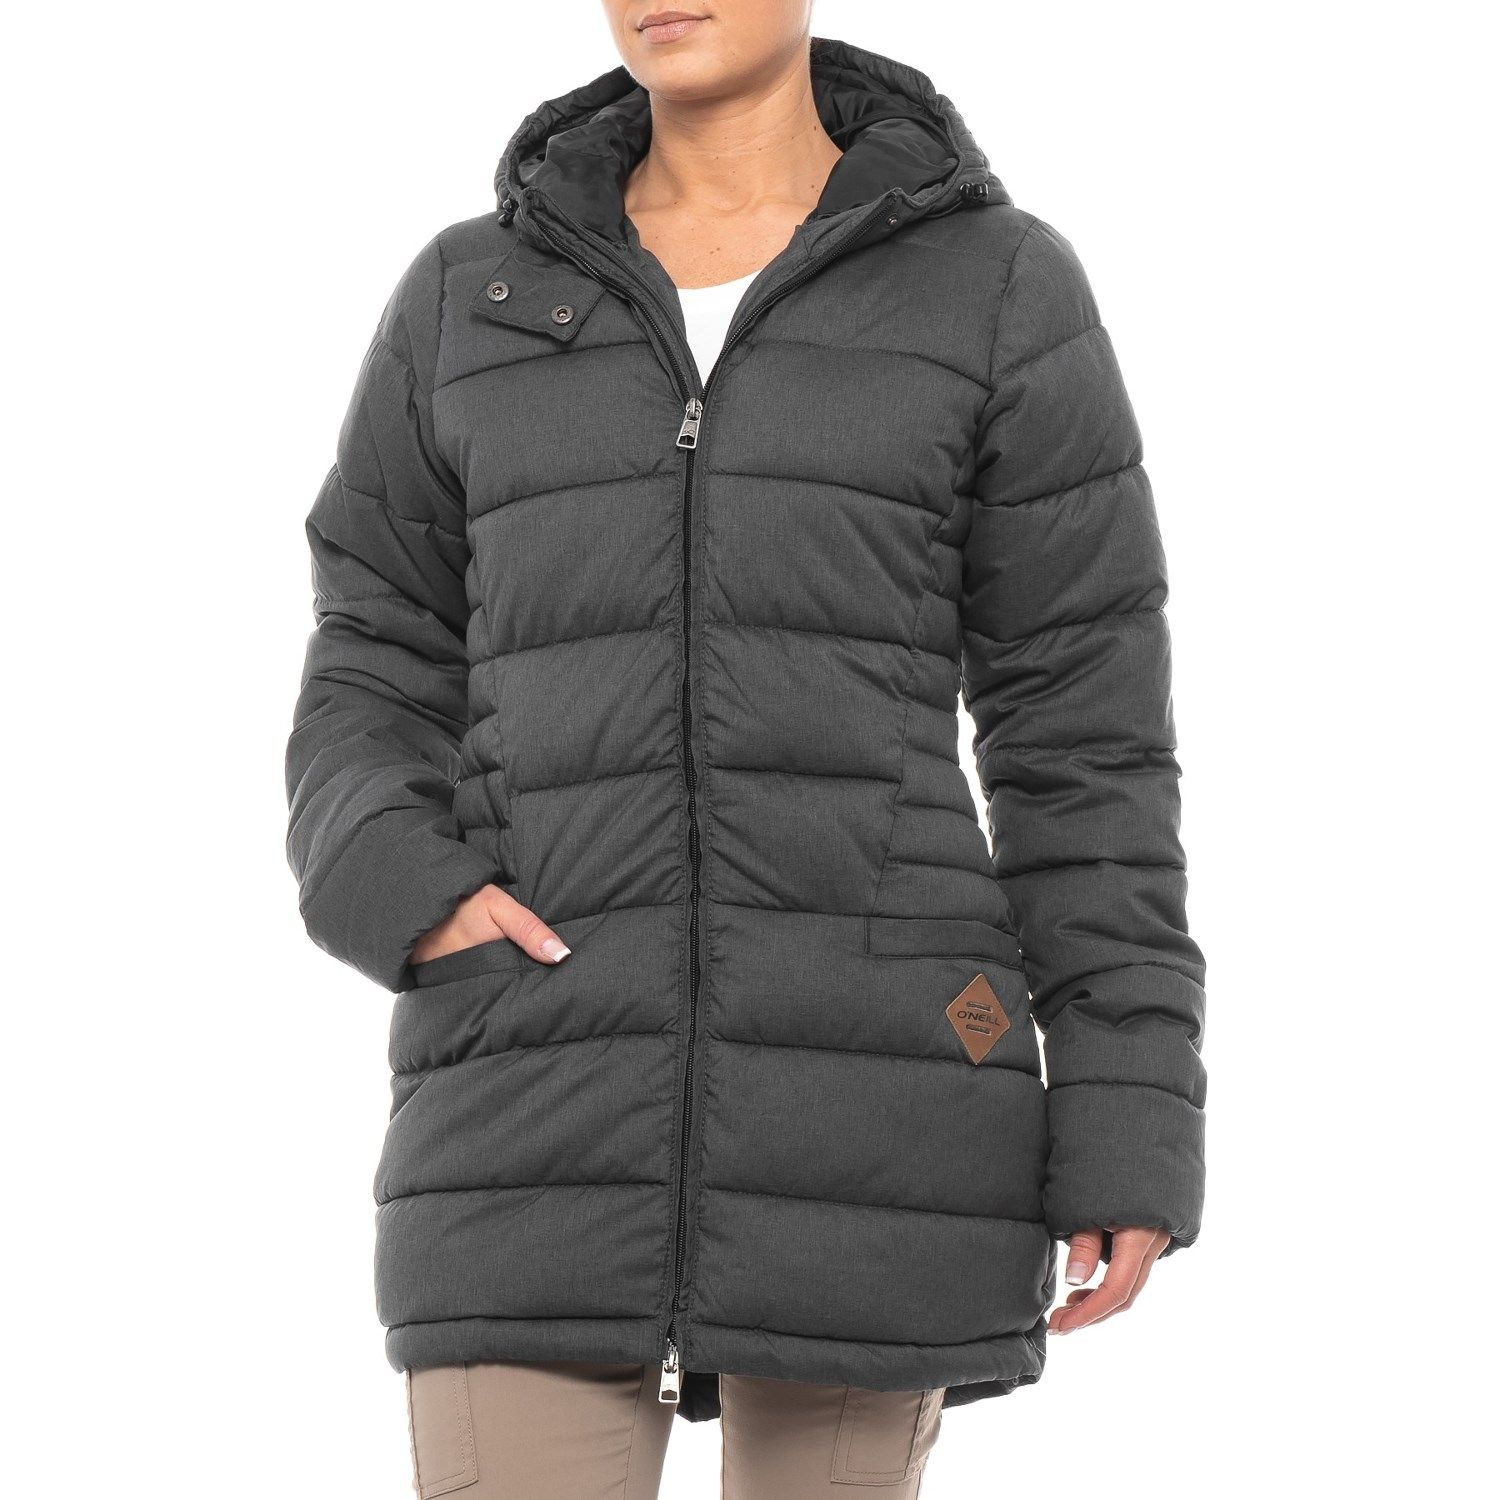 O Neill Control Jacket Insulated For Women Jackets Jackets For Women Cool Jackets